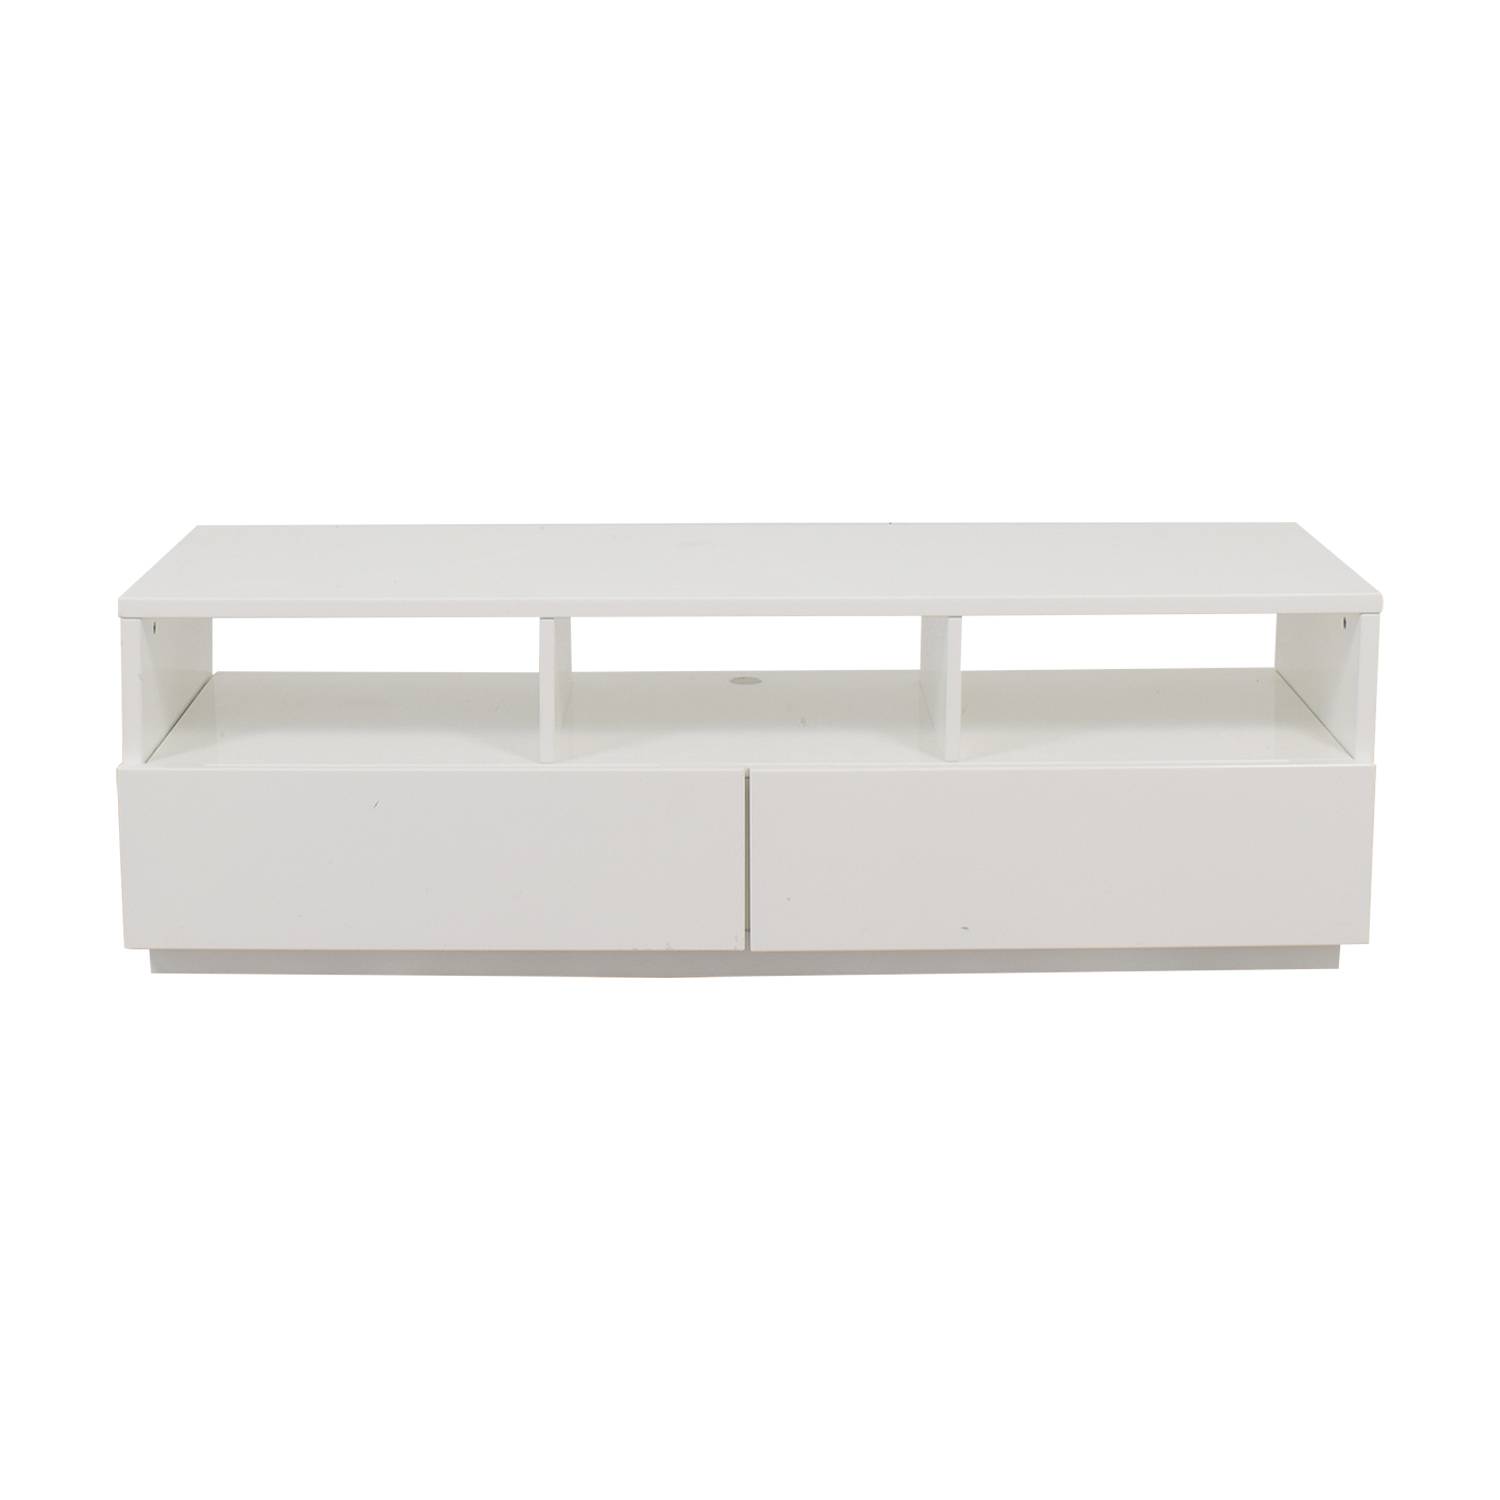 CB2 CB2 Chill White Media Console used